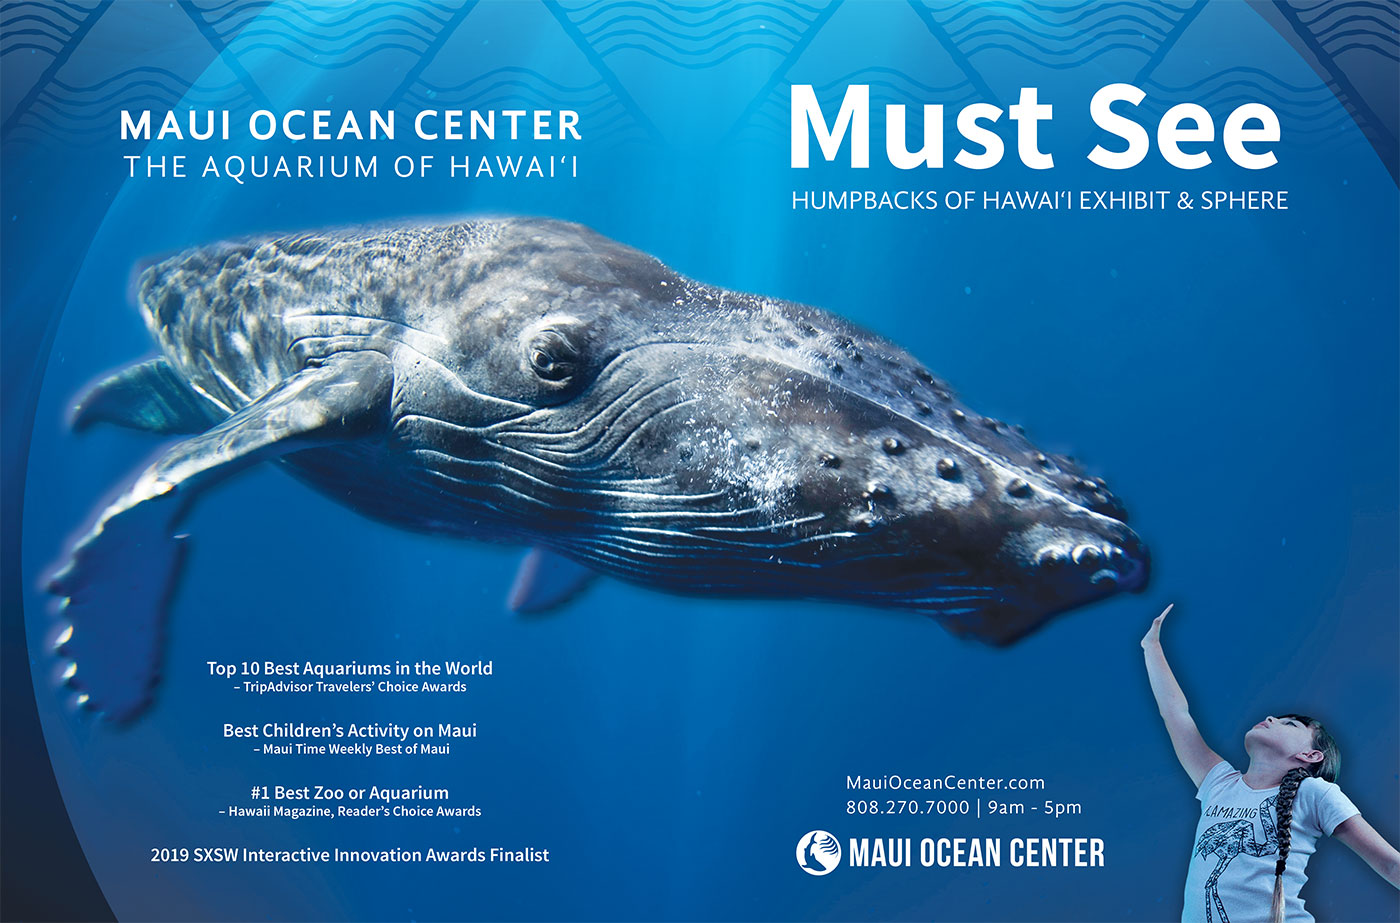 maui ocean center humpbacks